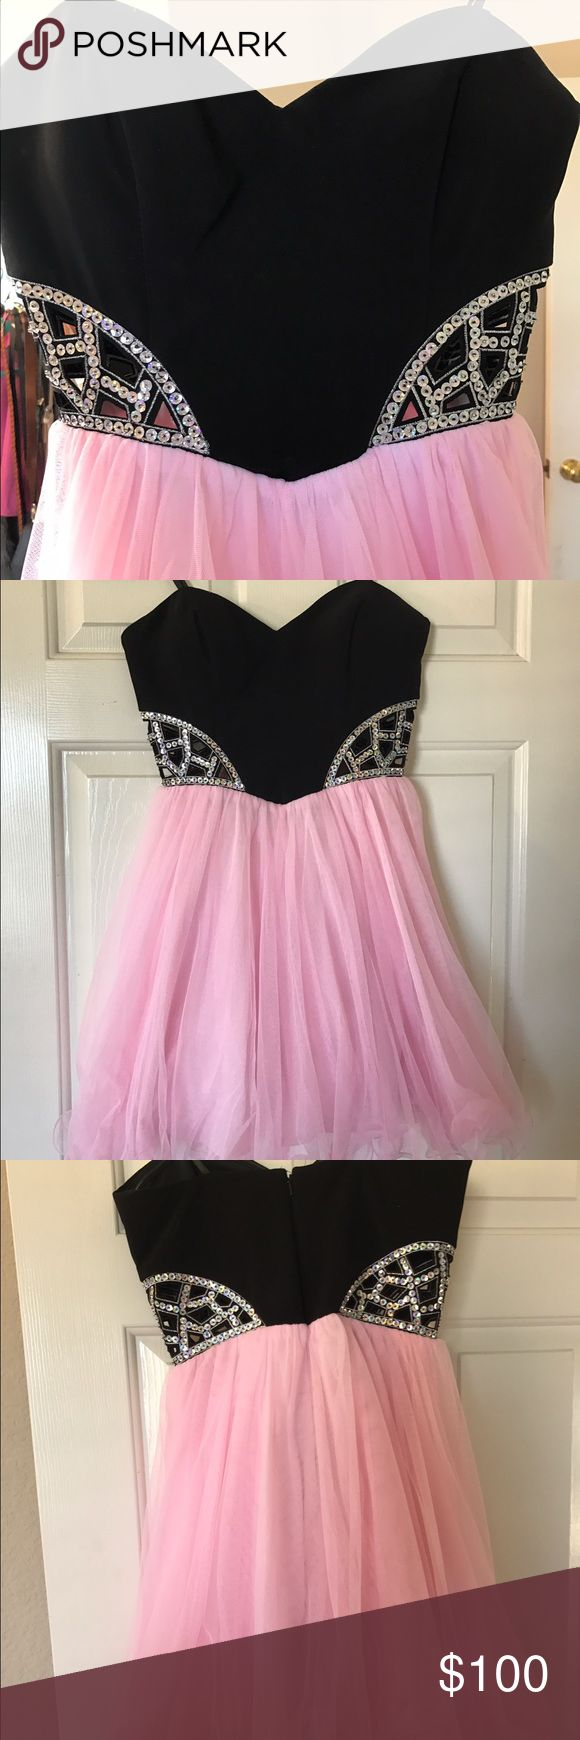 Pink and black homecoming dress Strapless (built in padding) black and pink dress. Two sequin cut outs on both sides of dress. 4 layers (meaning it is poofy). Only worn once. Blondie Nites Dresses Prom